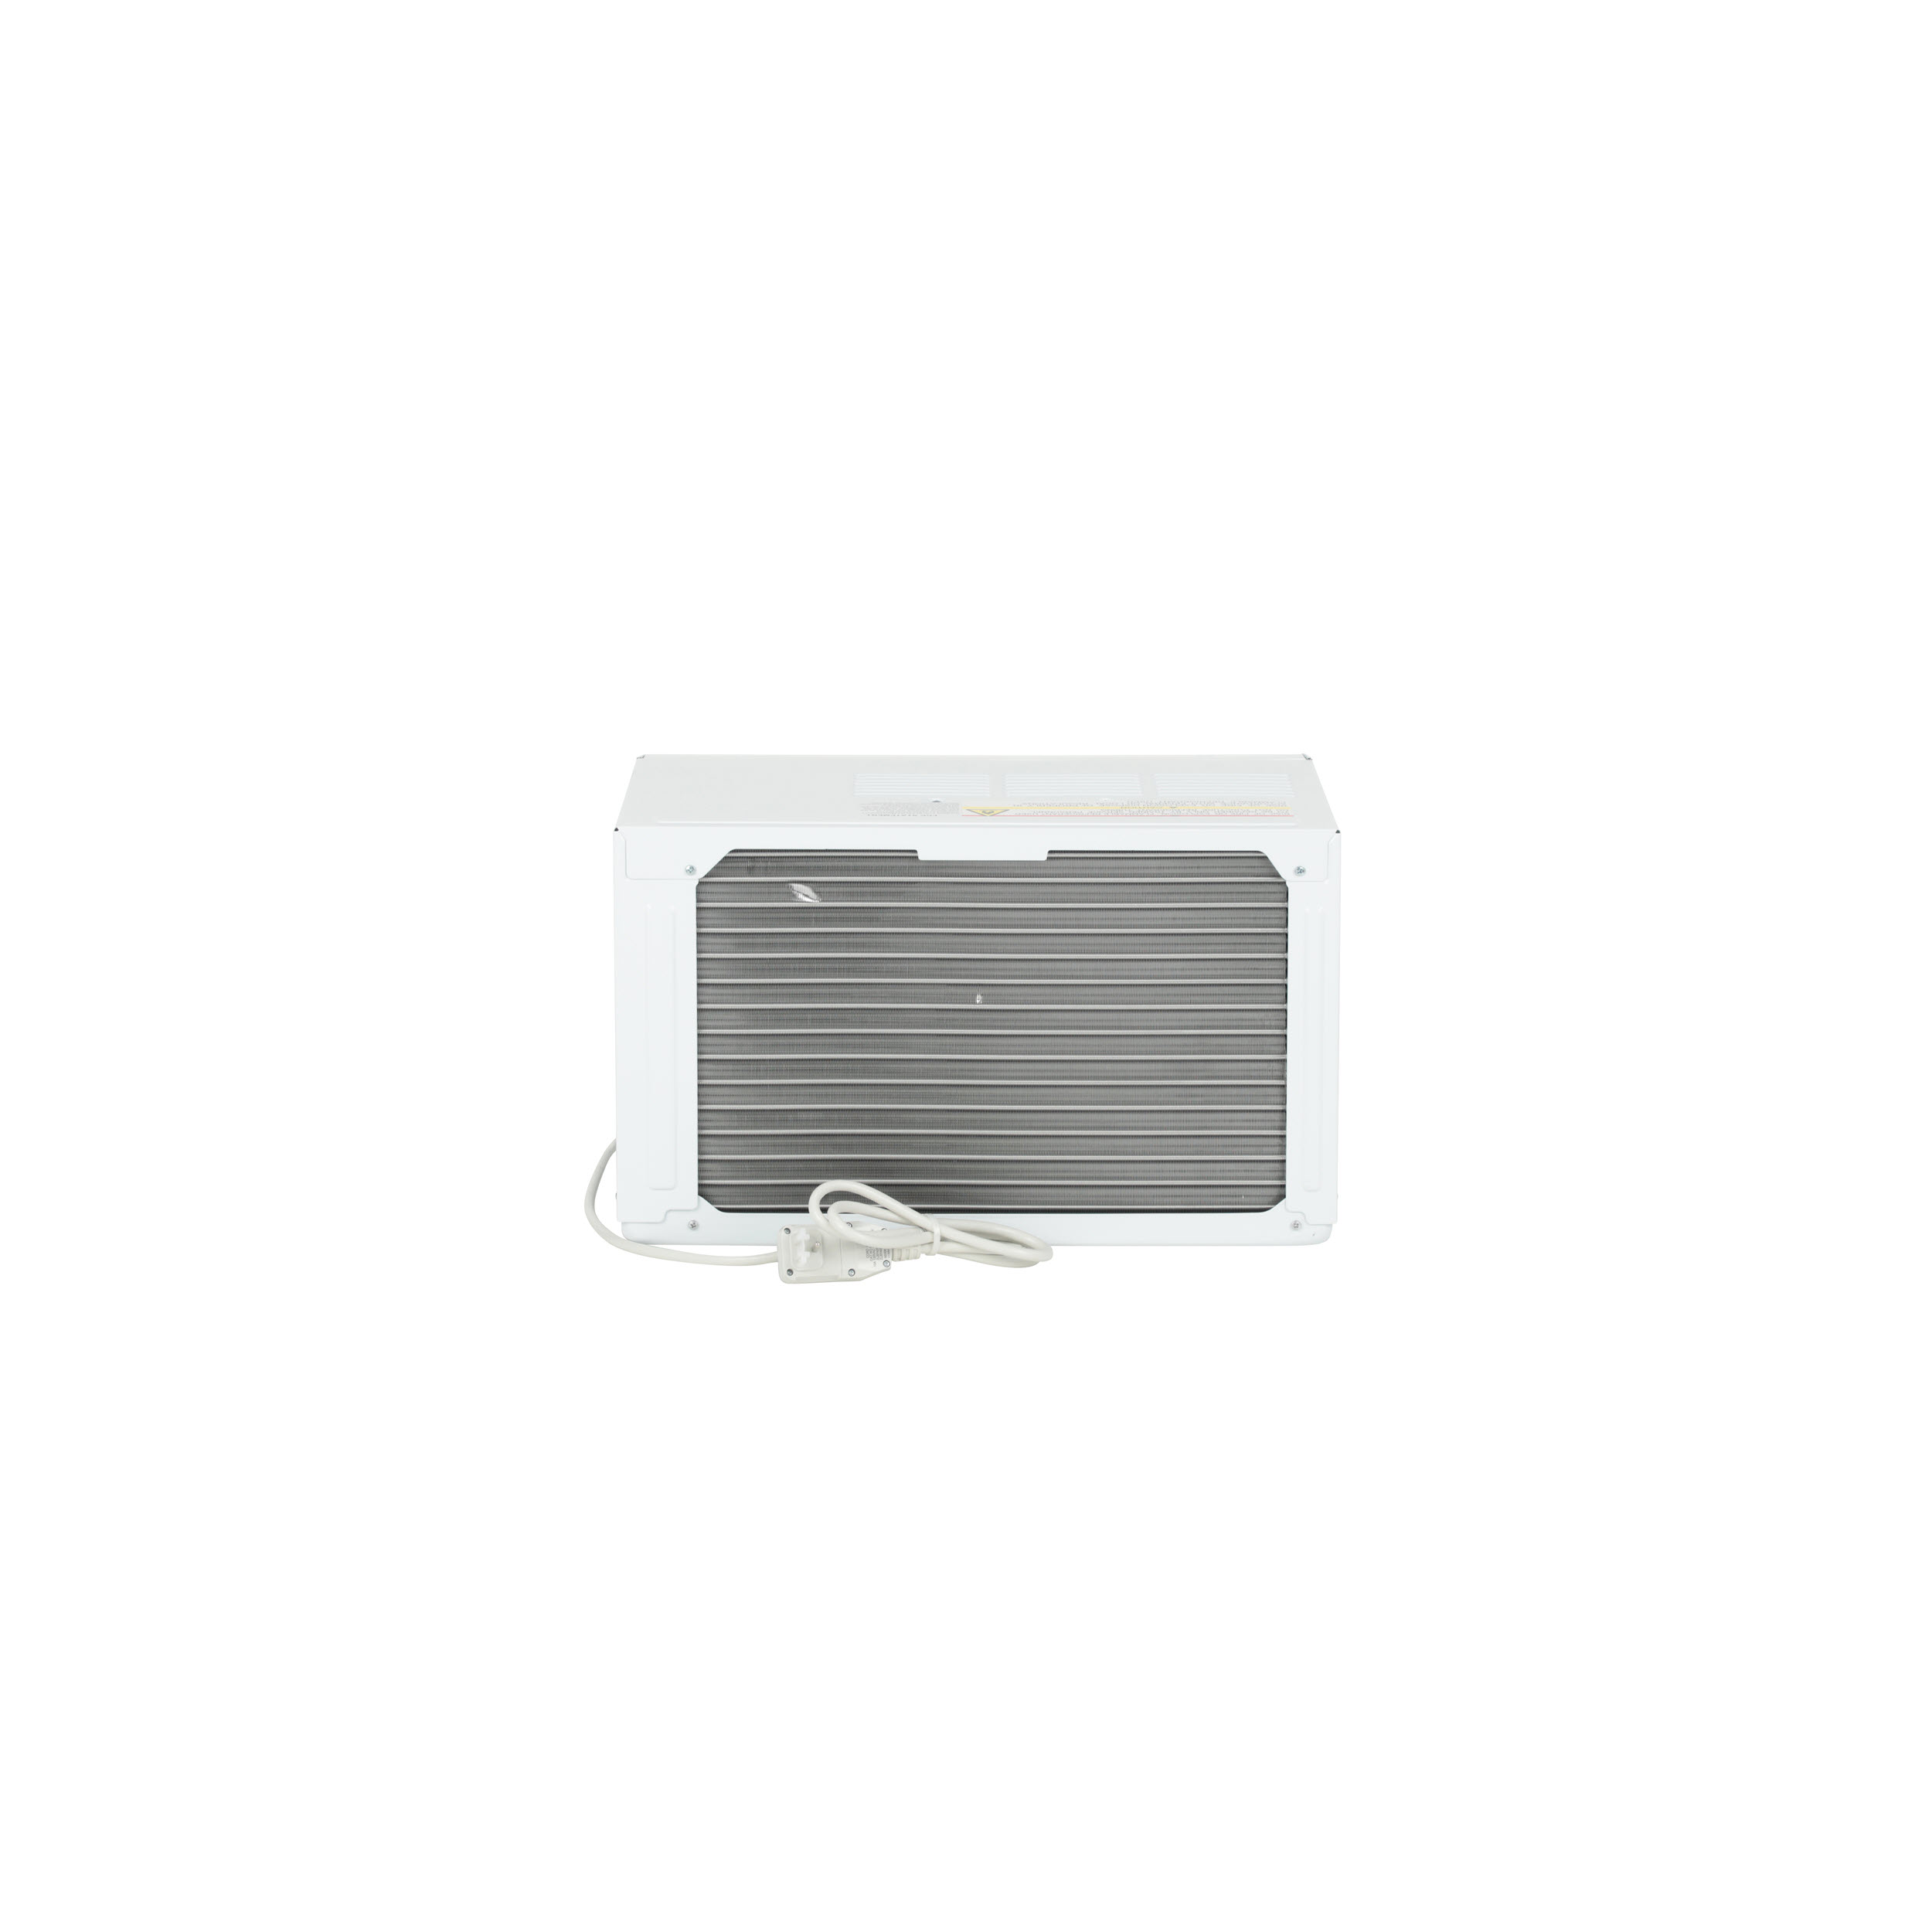 Model: PHC08LY | GE Profile GE Profile™ ENERGY STAR® 8,100 BTU Smart Ultra Quiet Window Air Conditioner for Medium Rooms up to 350 sq. ft.